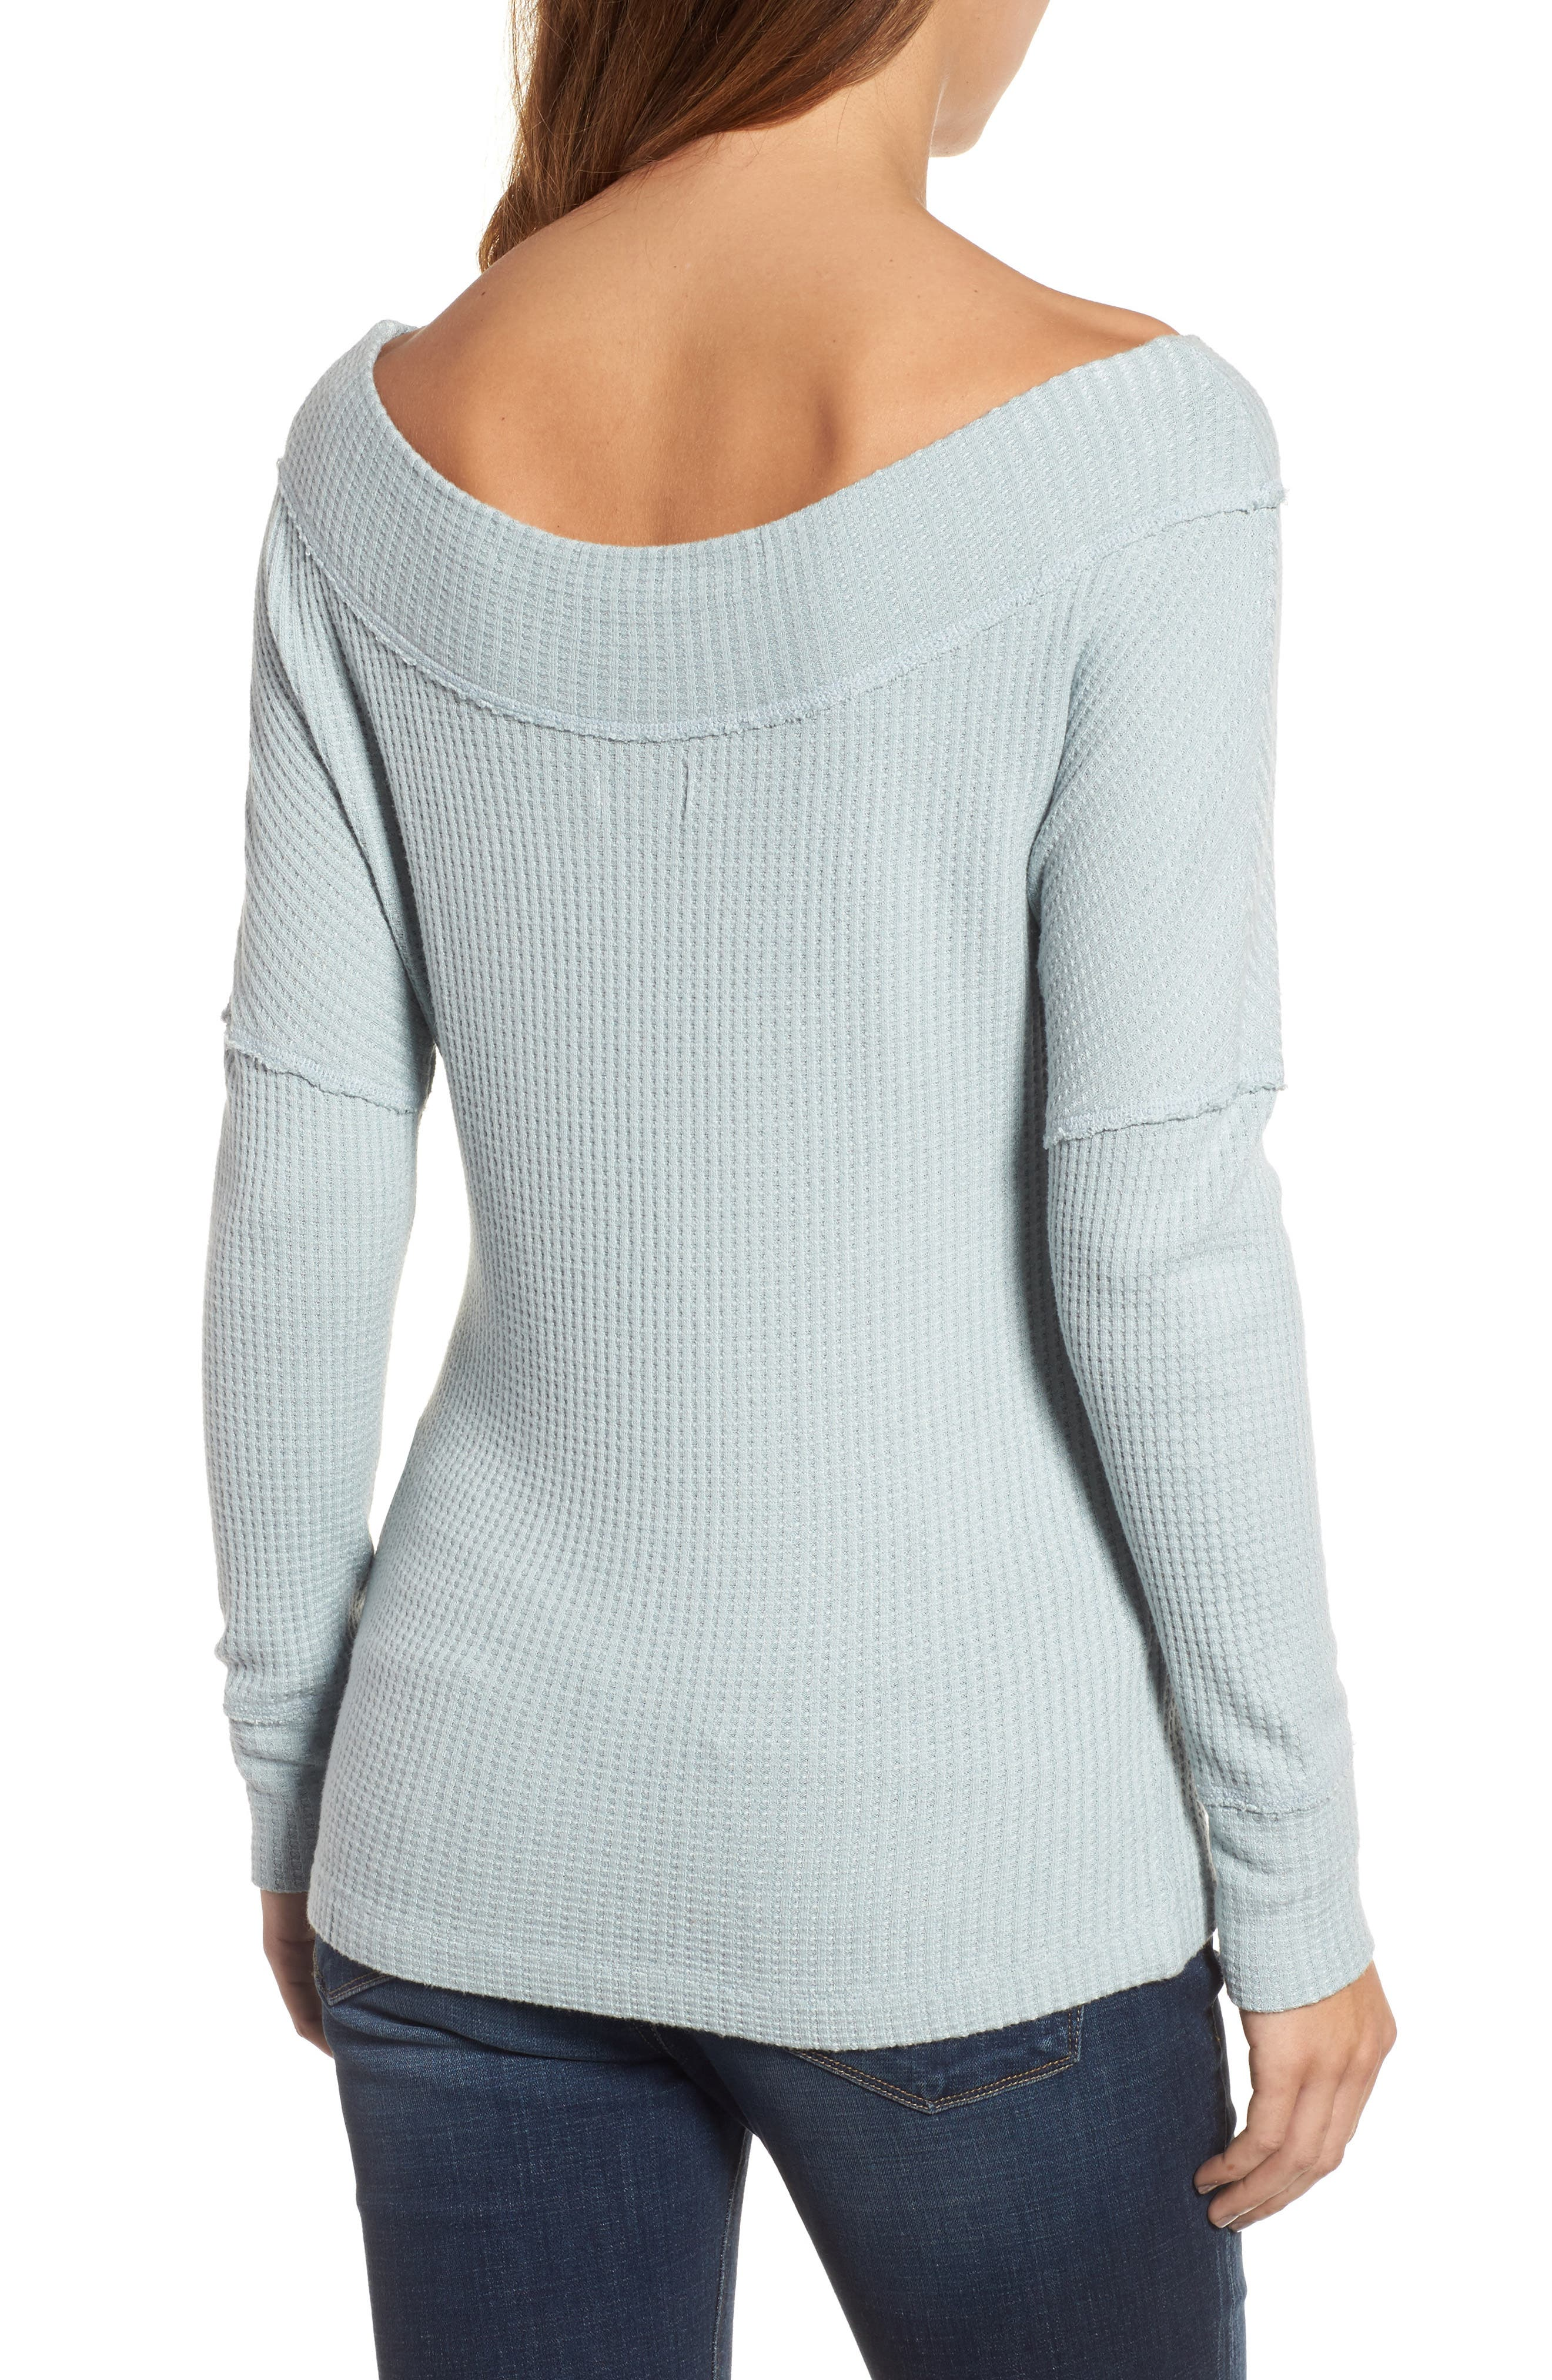 Off the Shoulder Thermal Knit Top,                             Alternate thumbnail 2, color,                             430